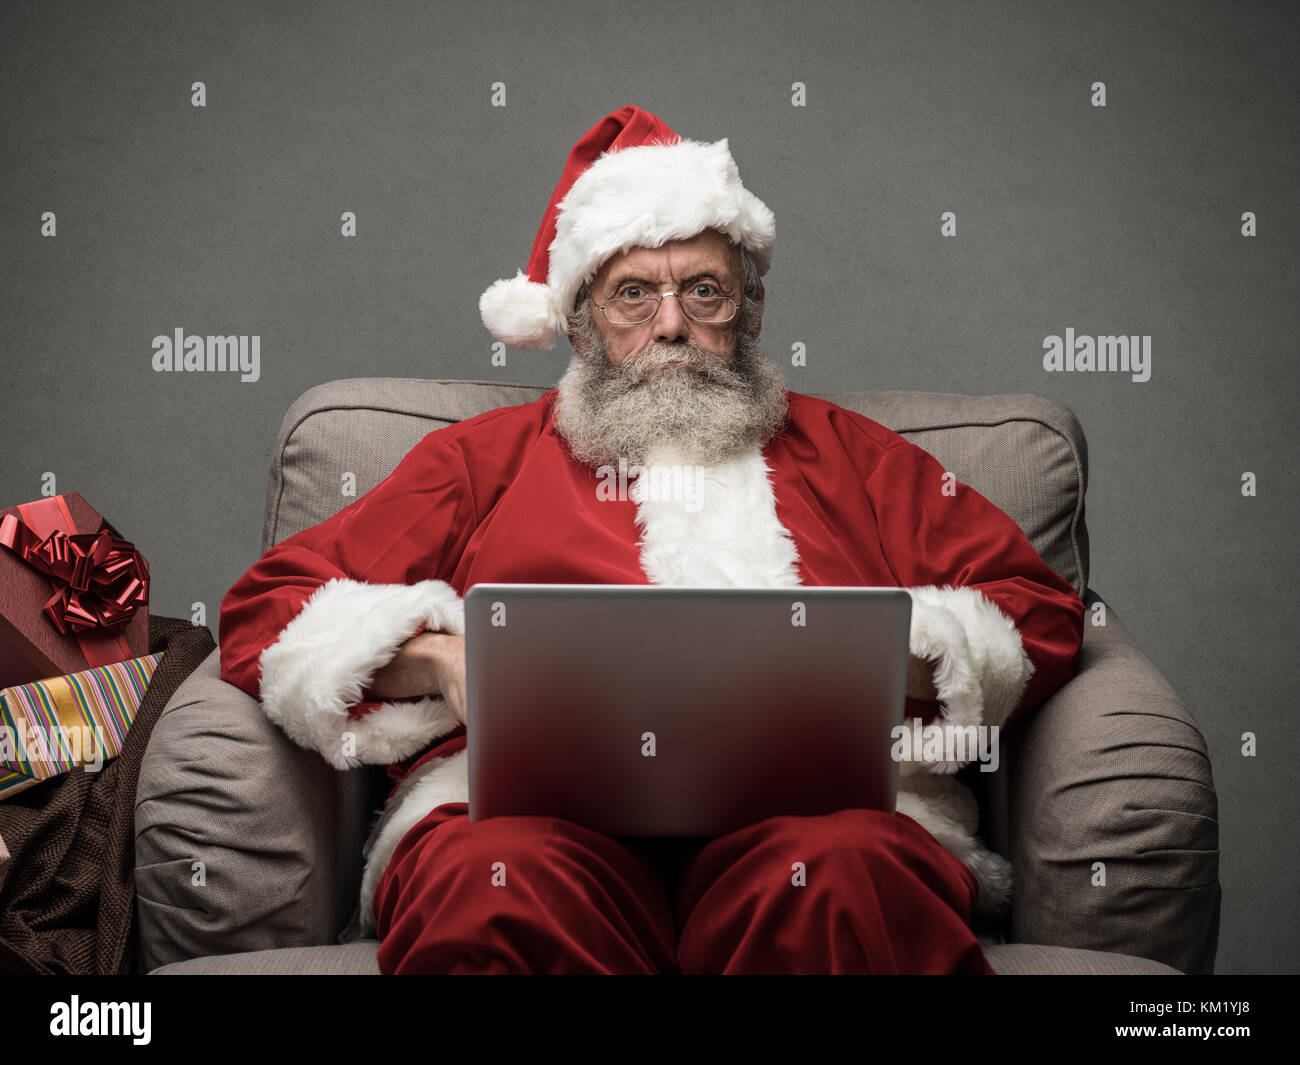 Santa claus relaxing at home and connecting with a laptop, he is chatting and social networking, Christmas time - Stock Image